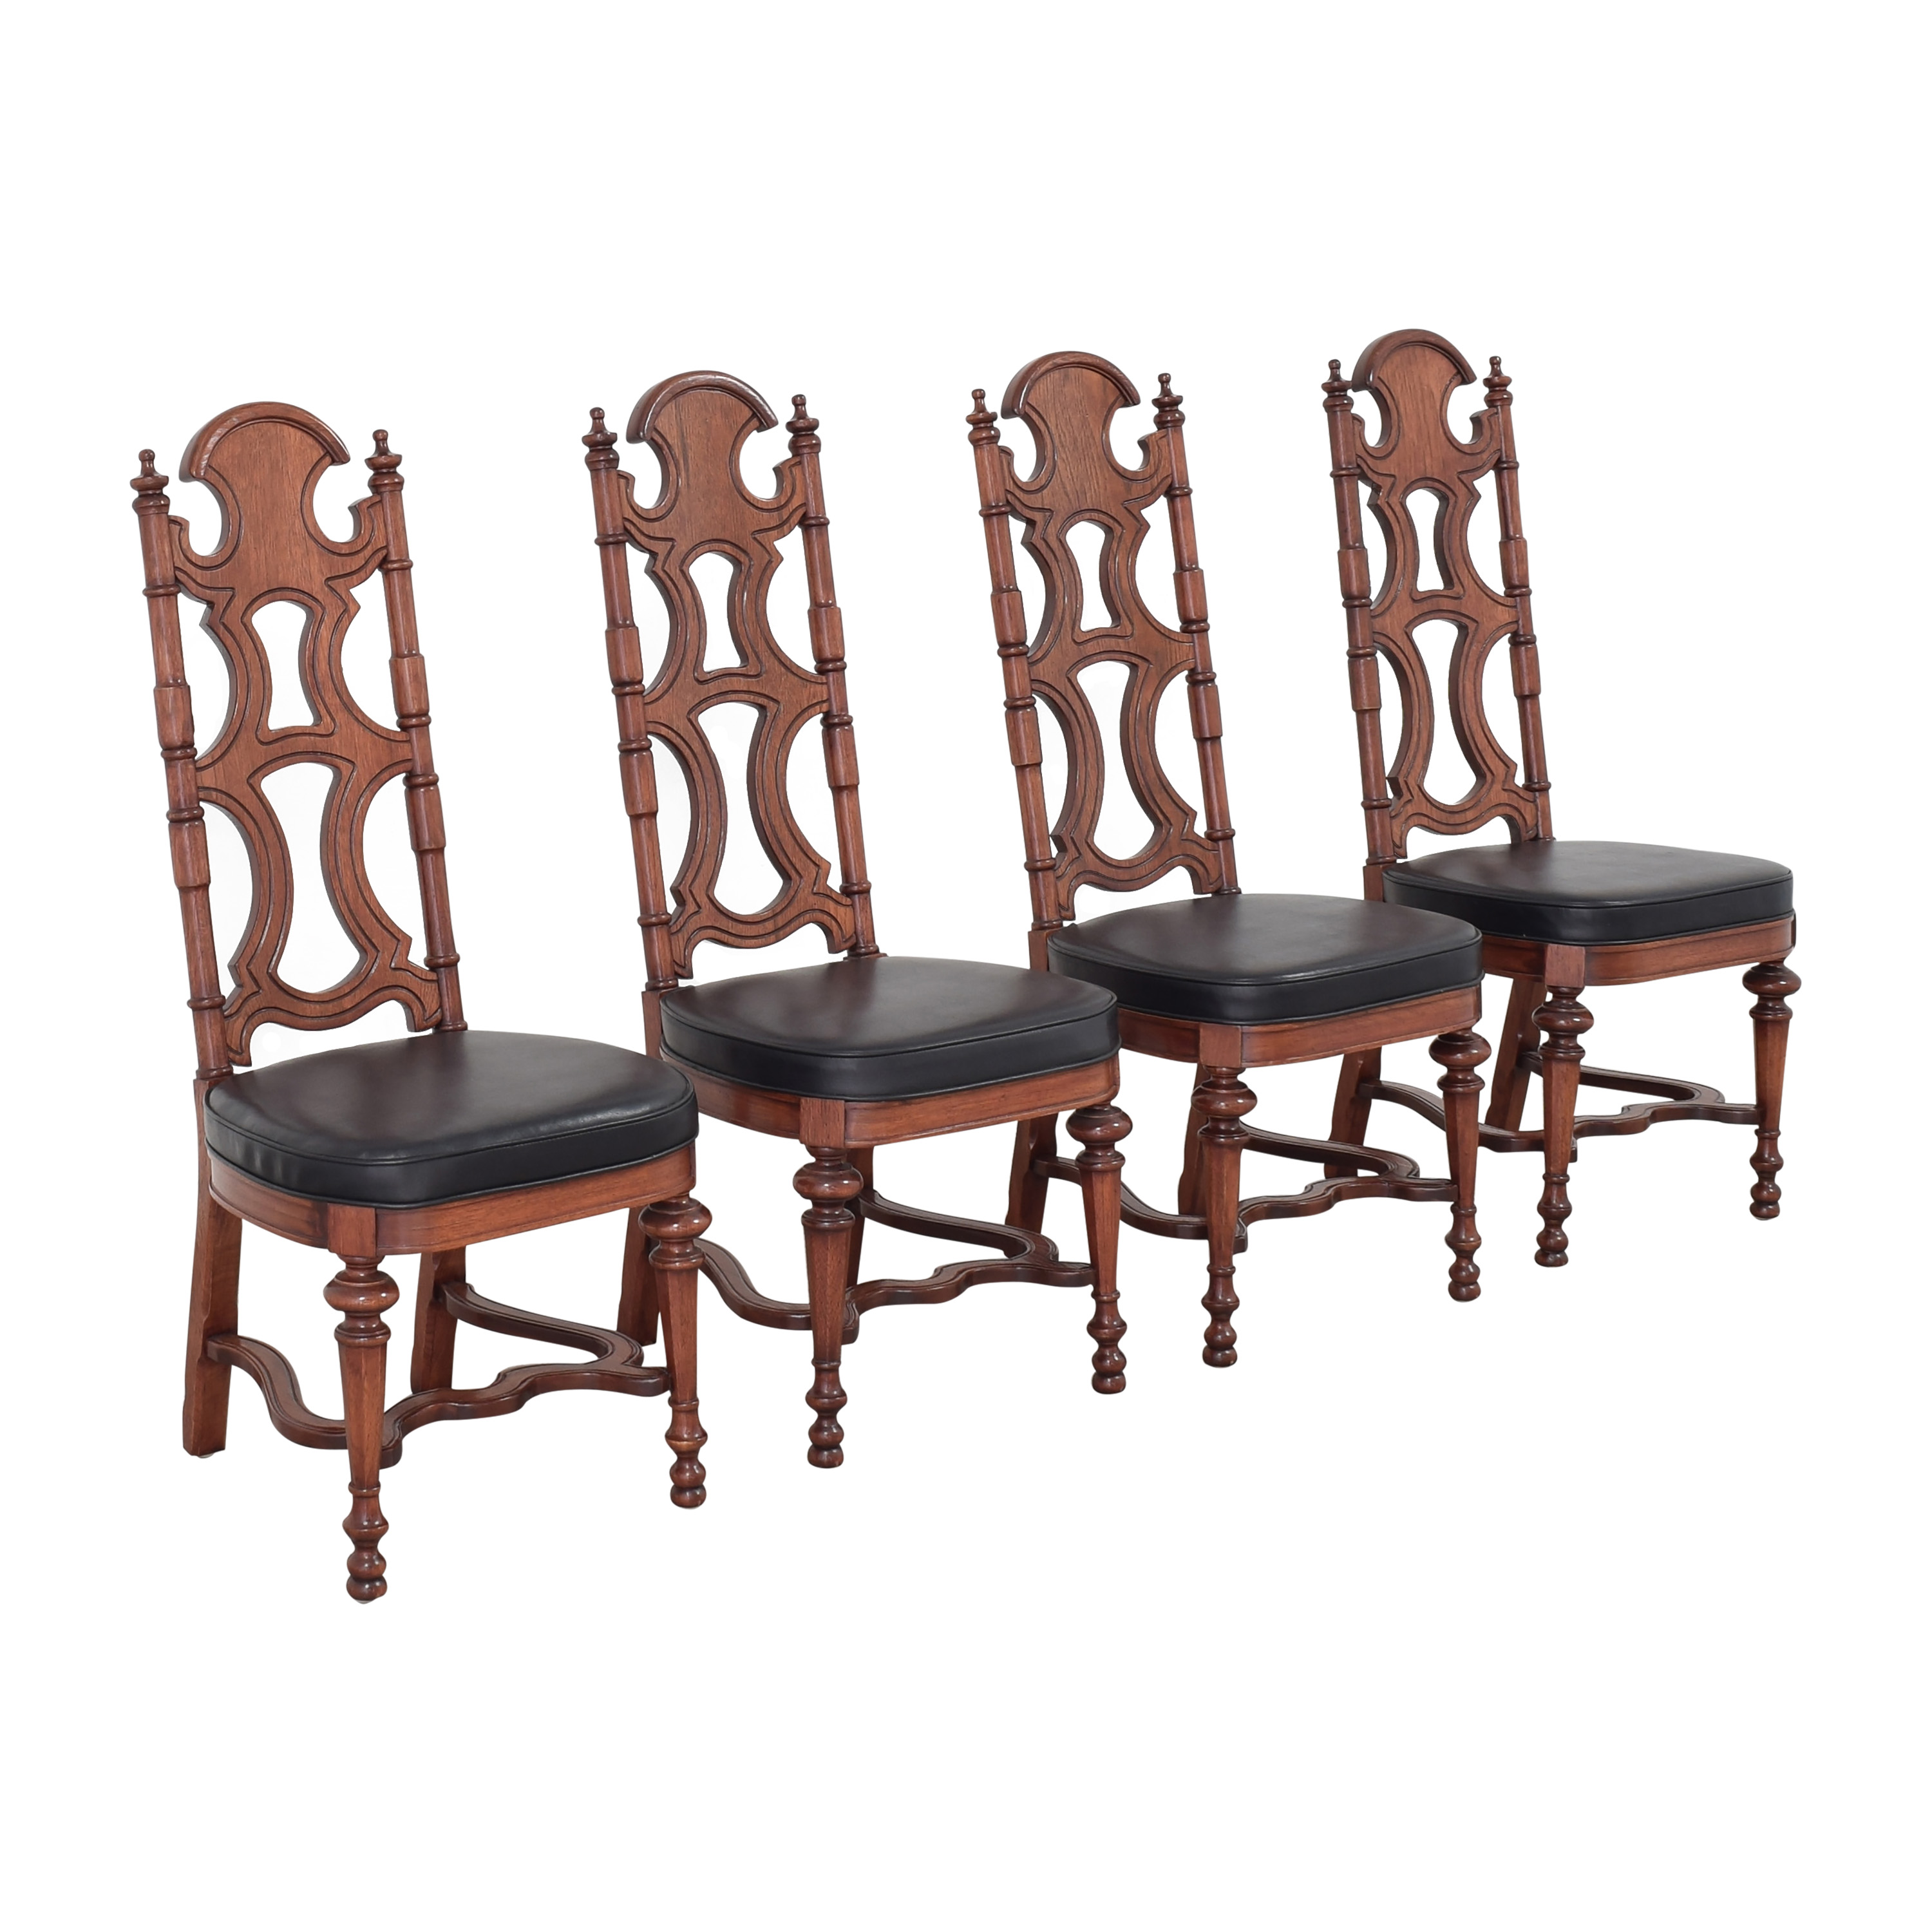 Drexel High Back Dining Chairs Drexel